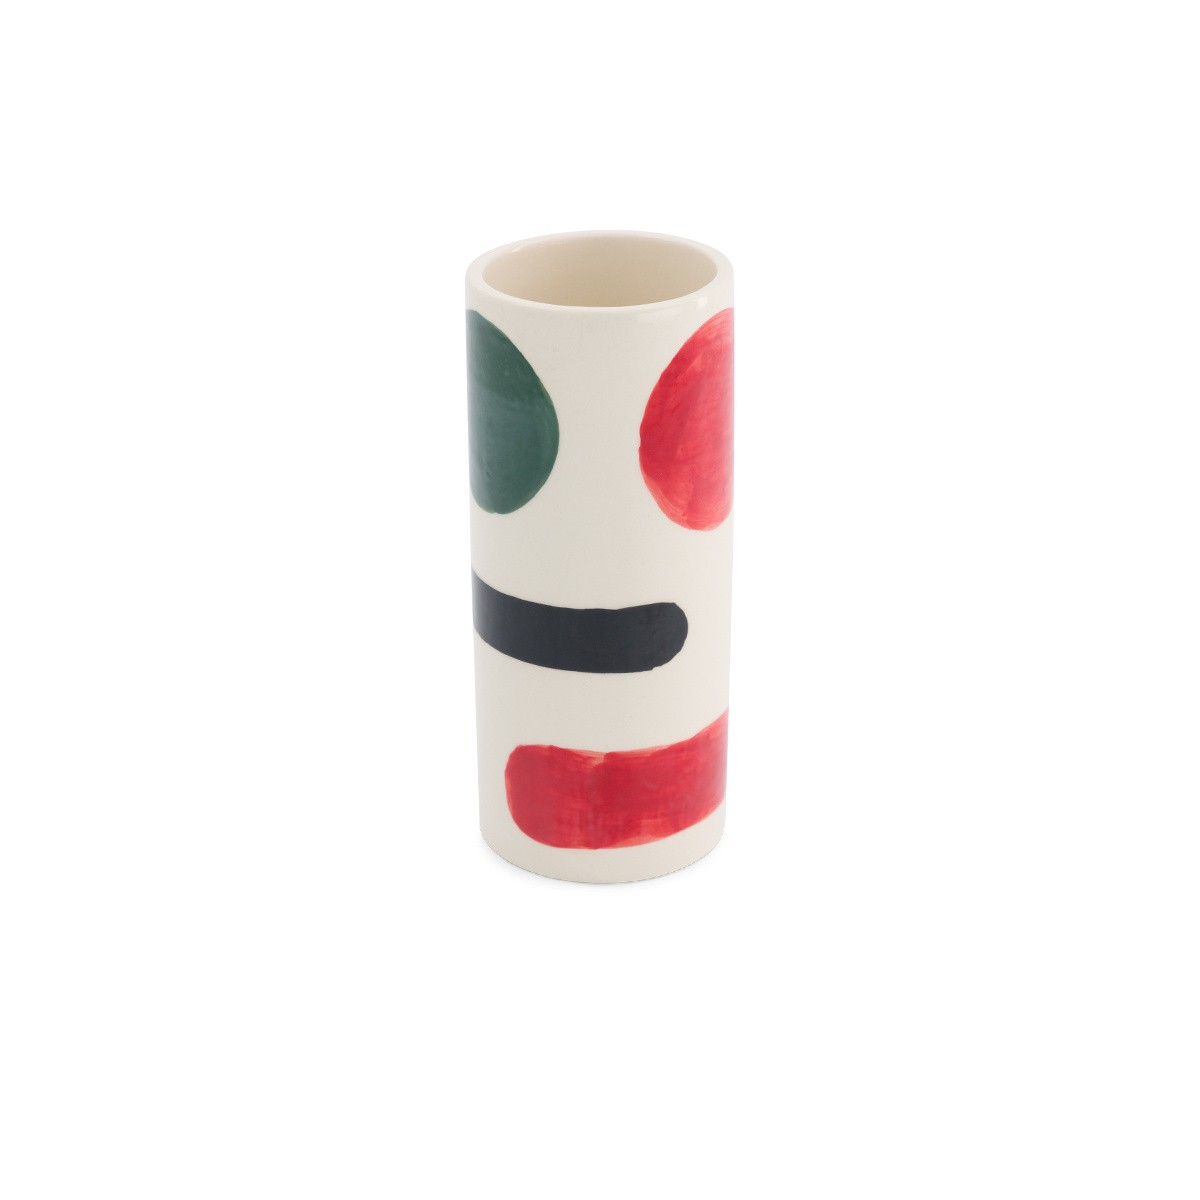 Domino pot medium model with black, red and green pattern